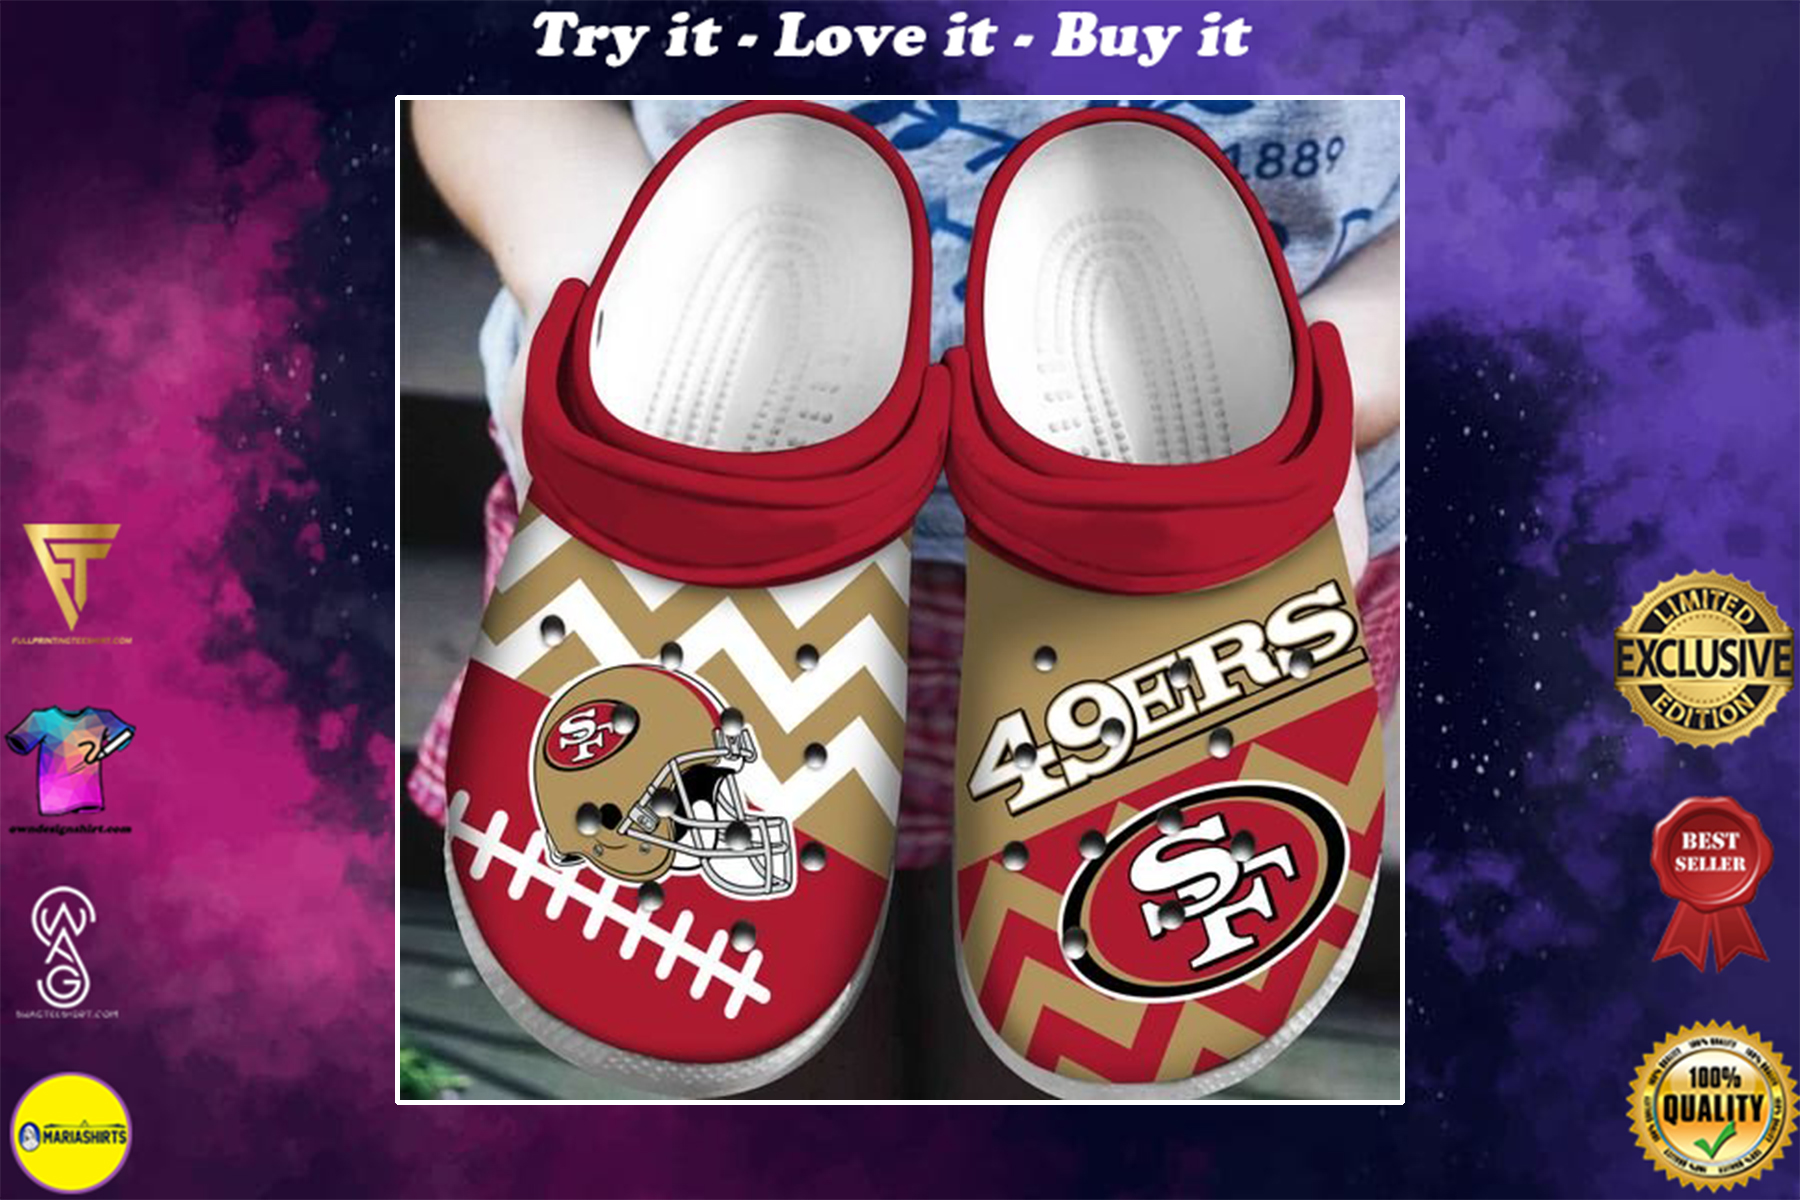 national football league san francisco 49ers helmet crocs - Copy